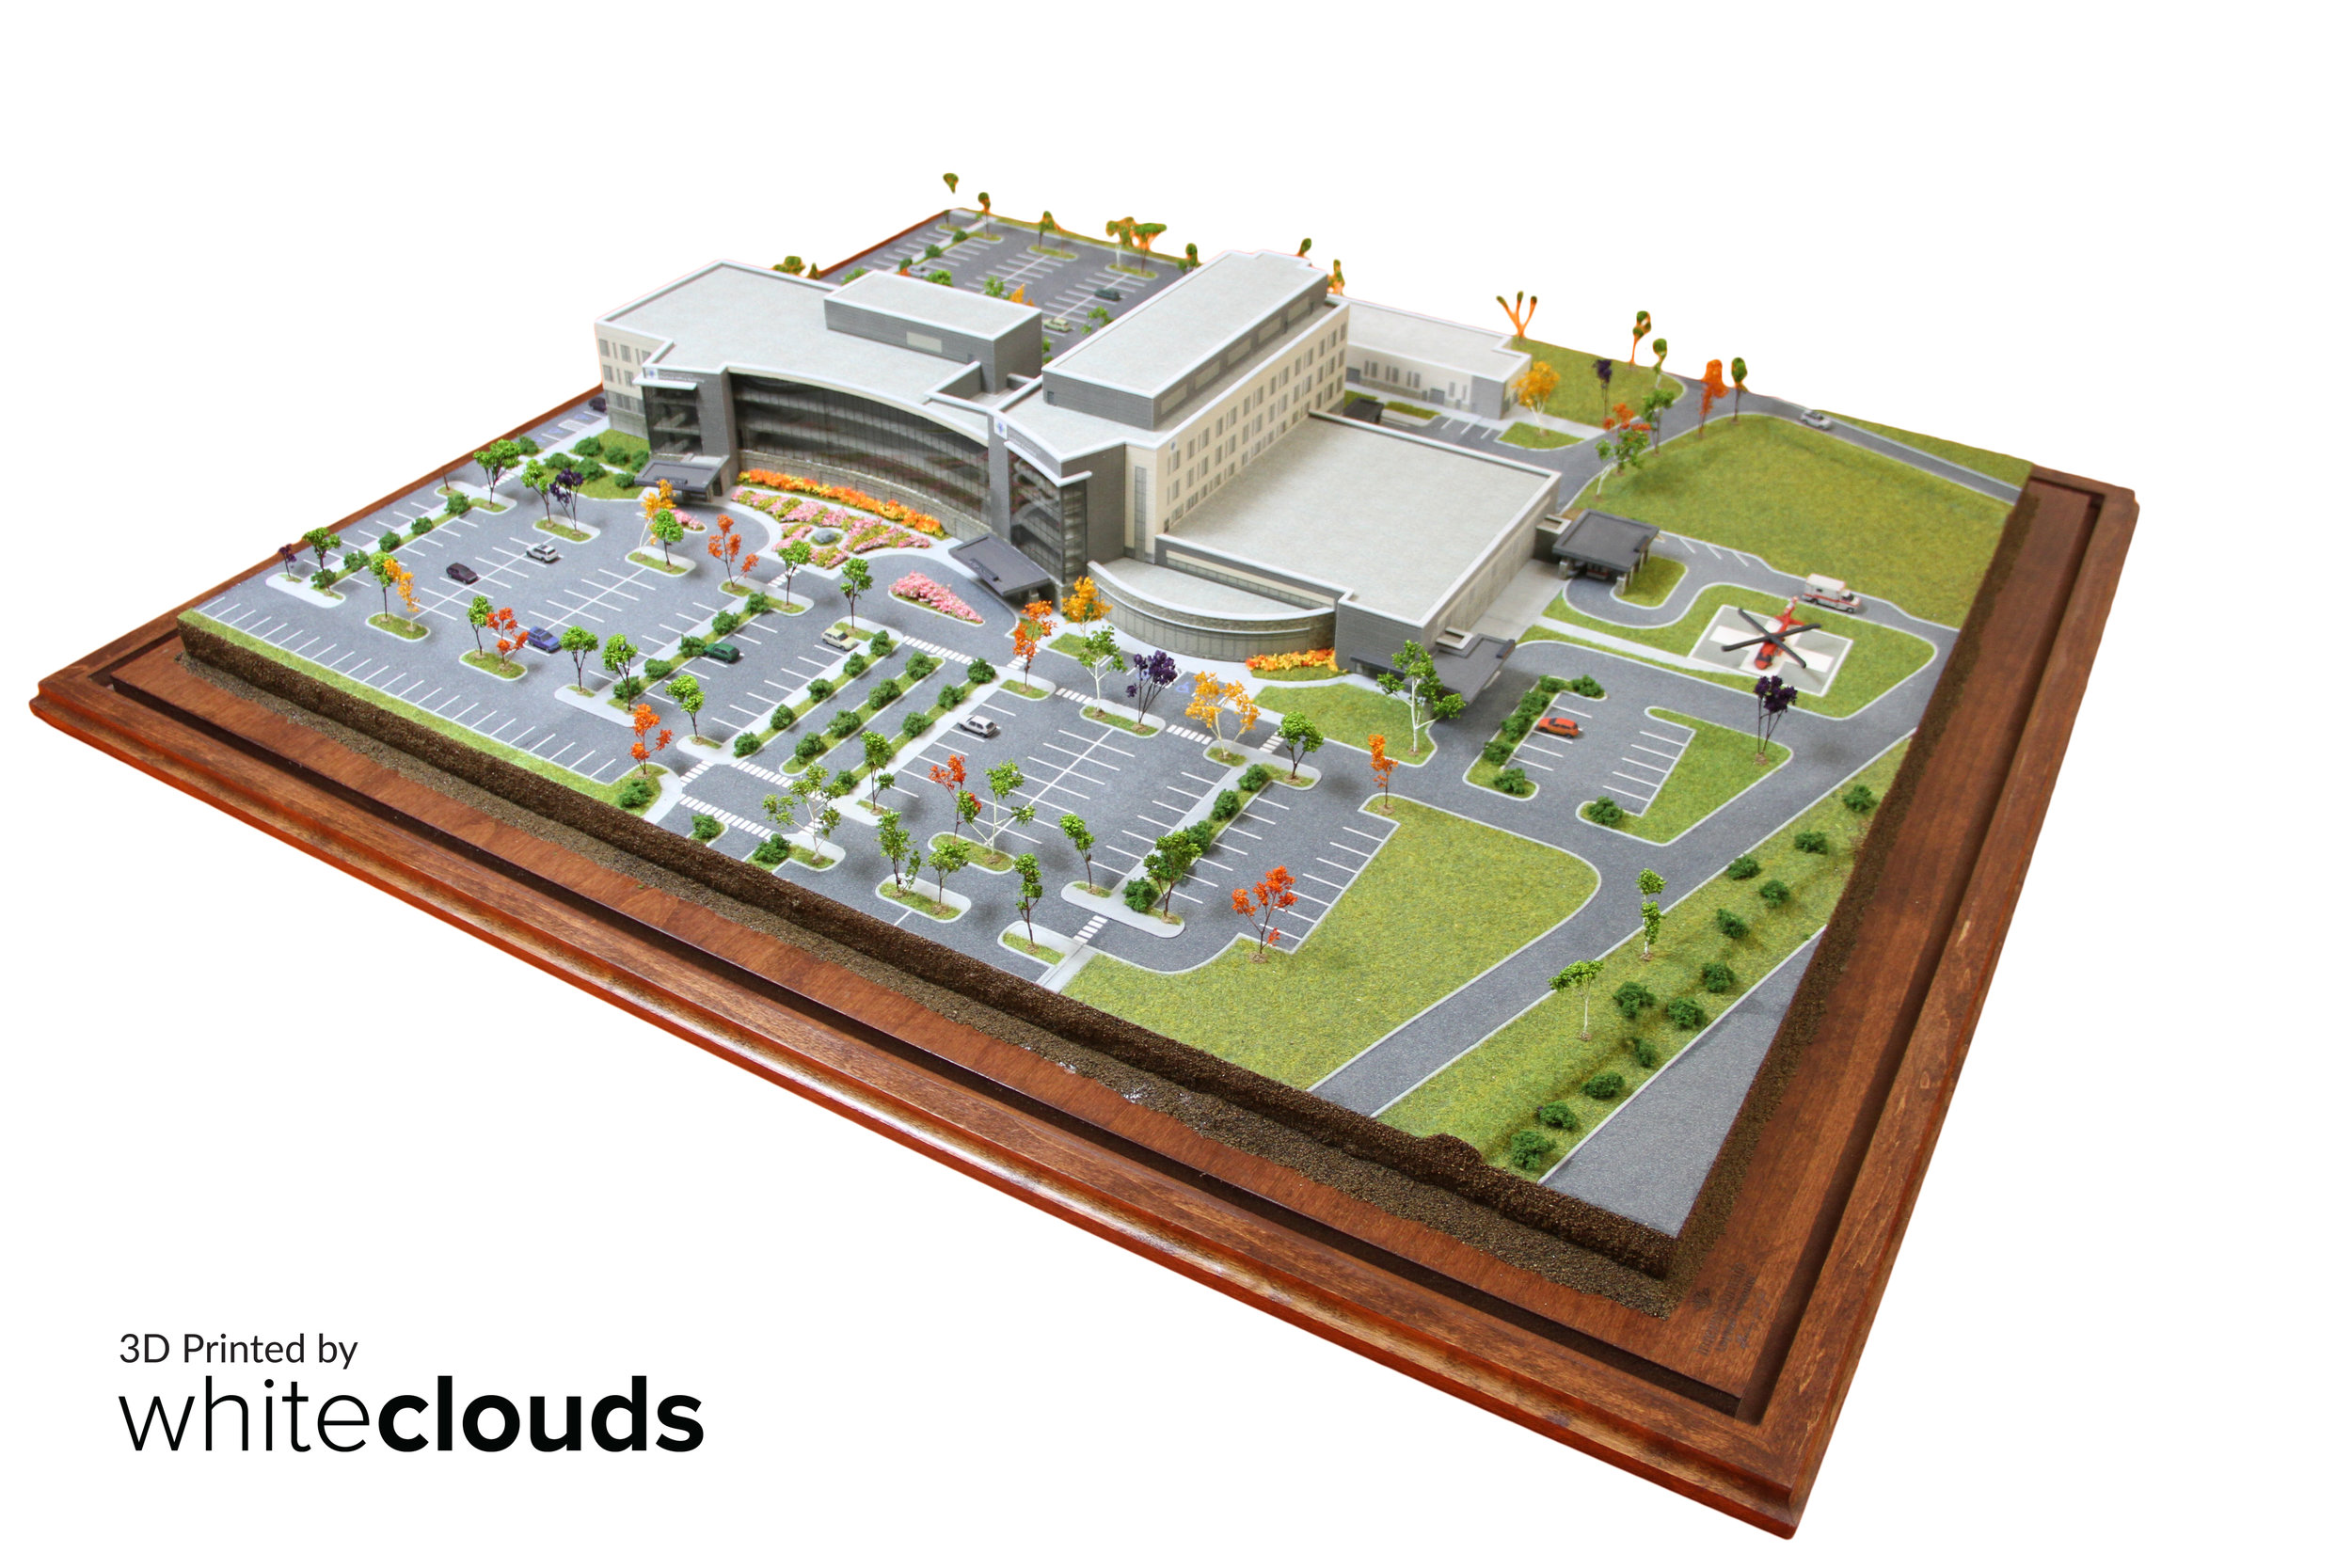 3D-Printed-WhiteClouds-Hospital-Architecture-Layton-Hospital-1.JPG